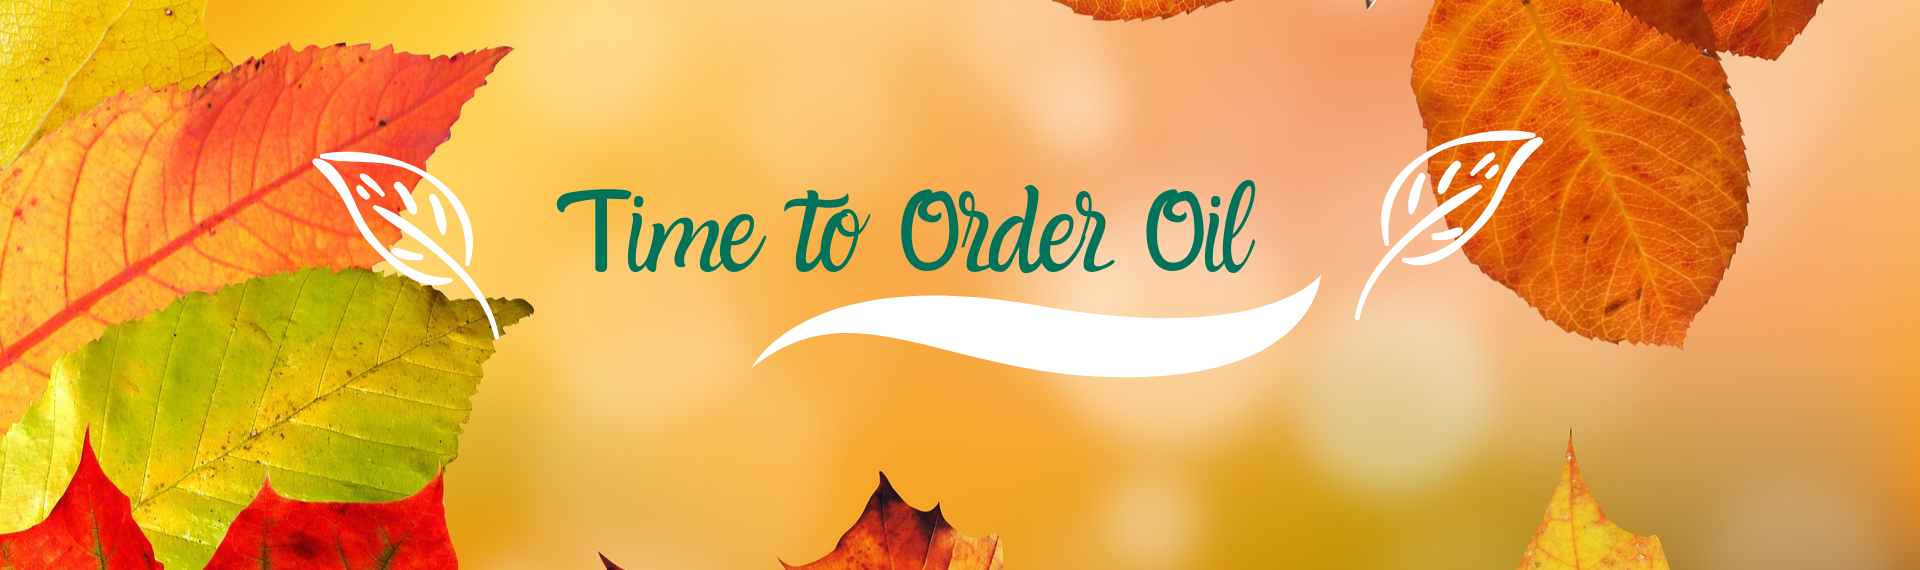 Order Oil Online in Laois, Offaly, Westmeath